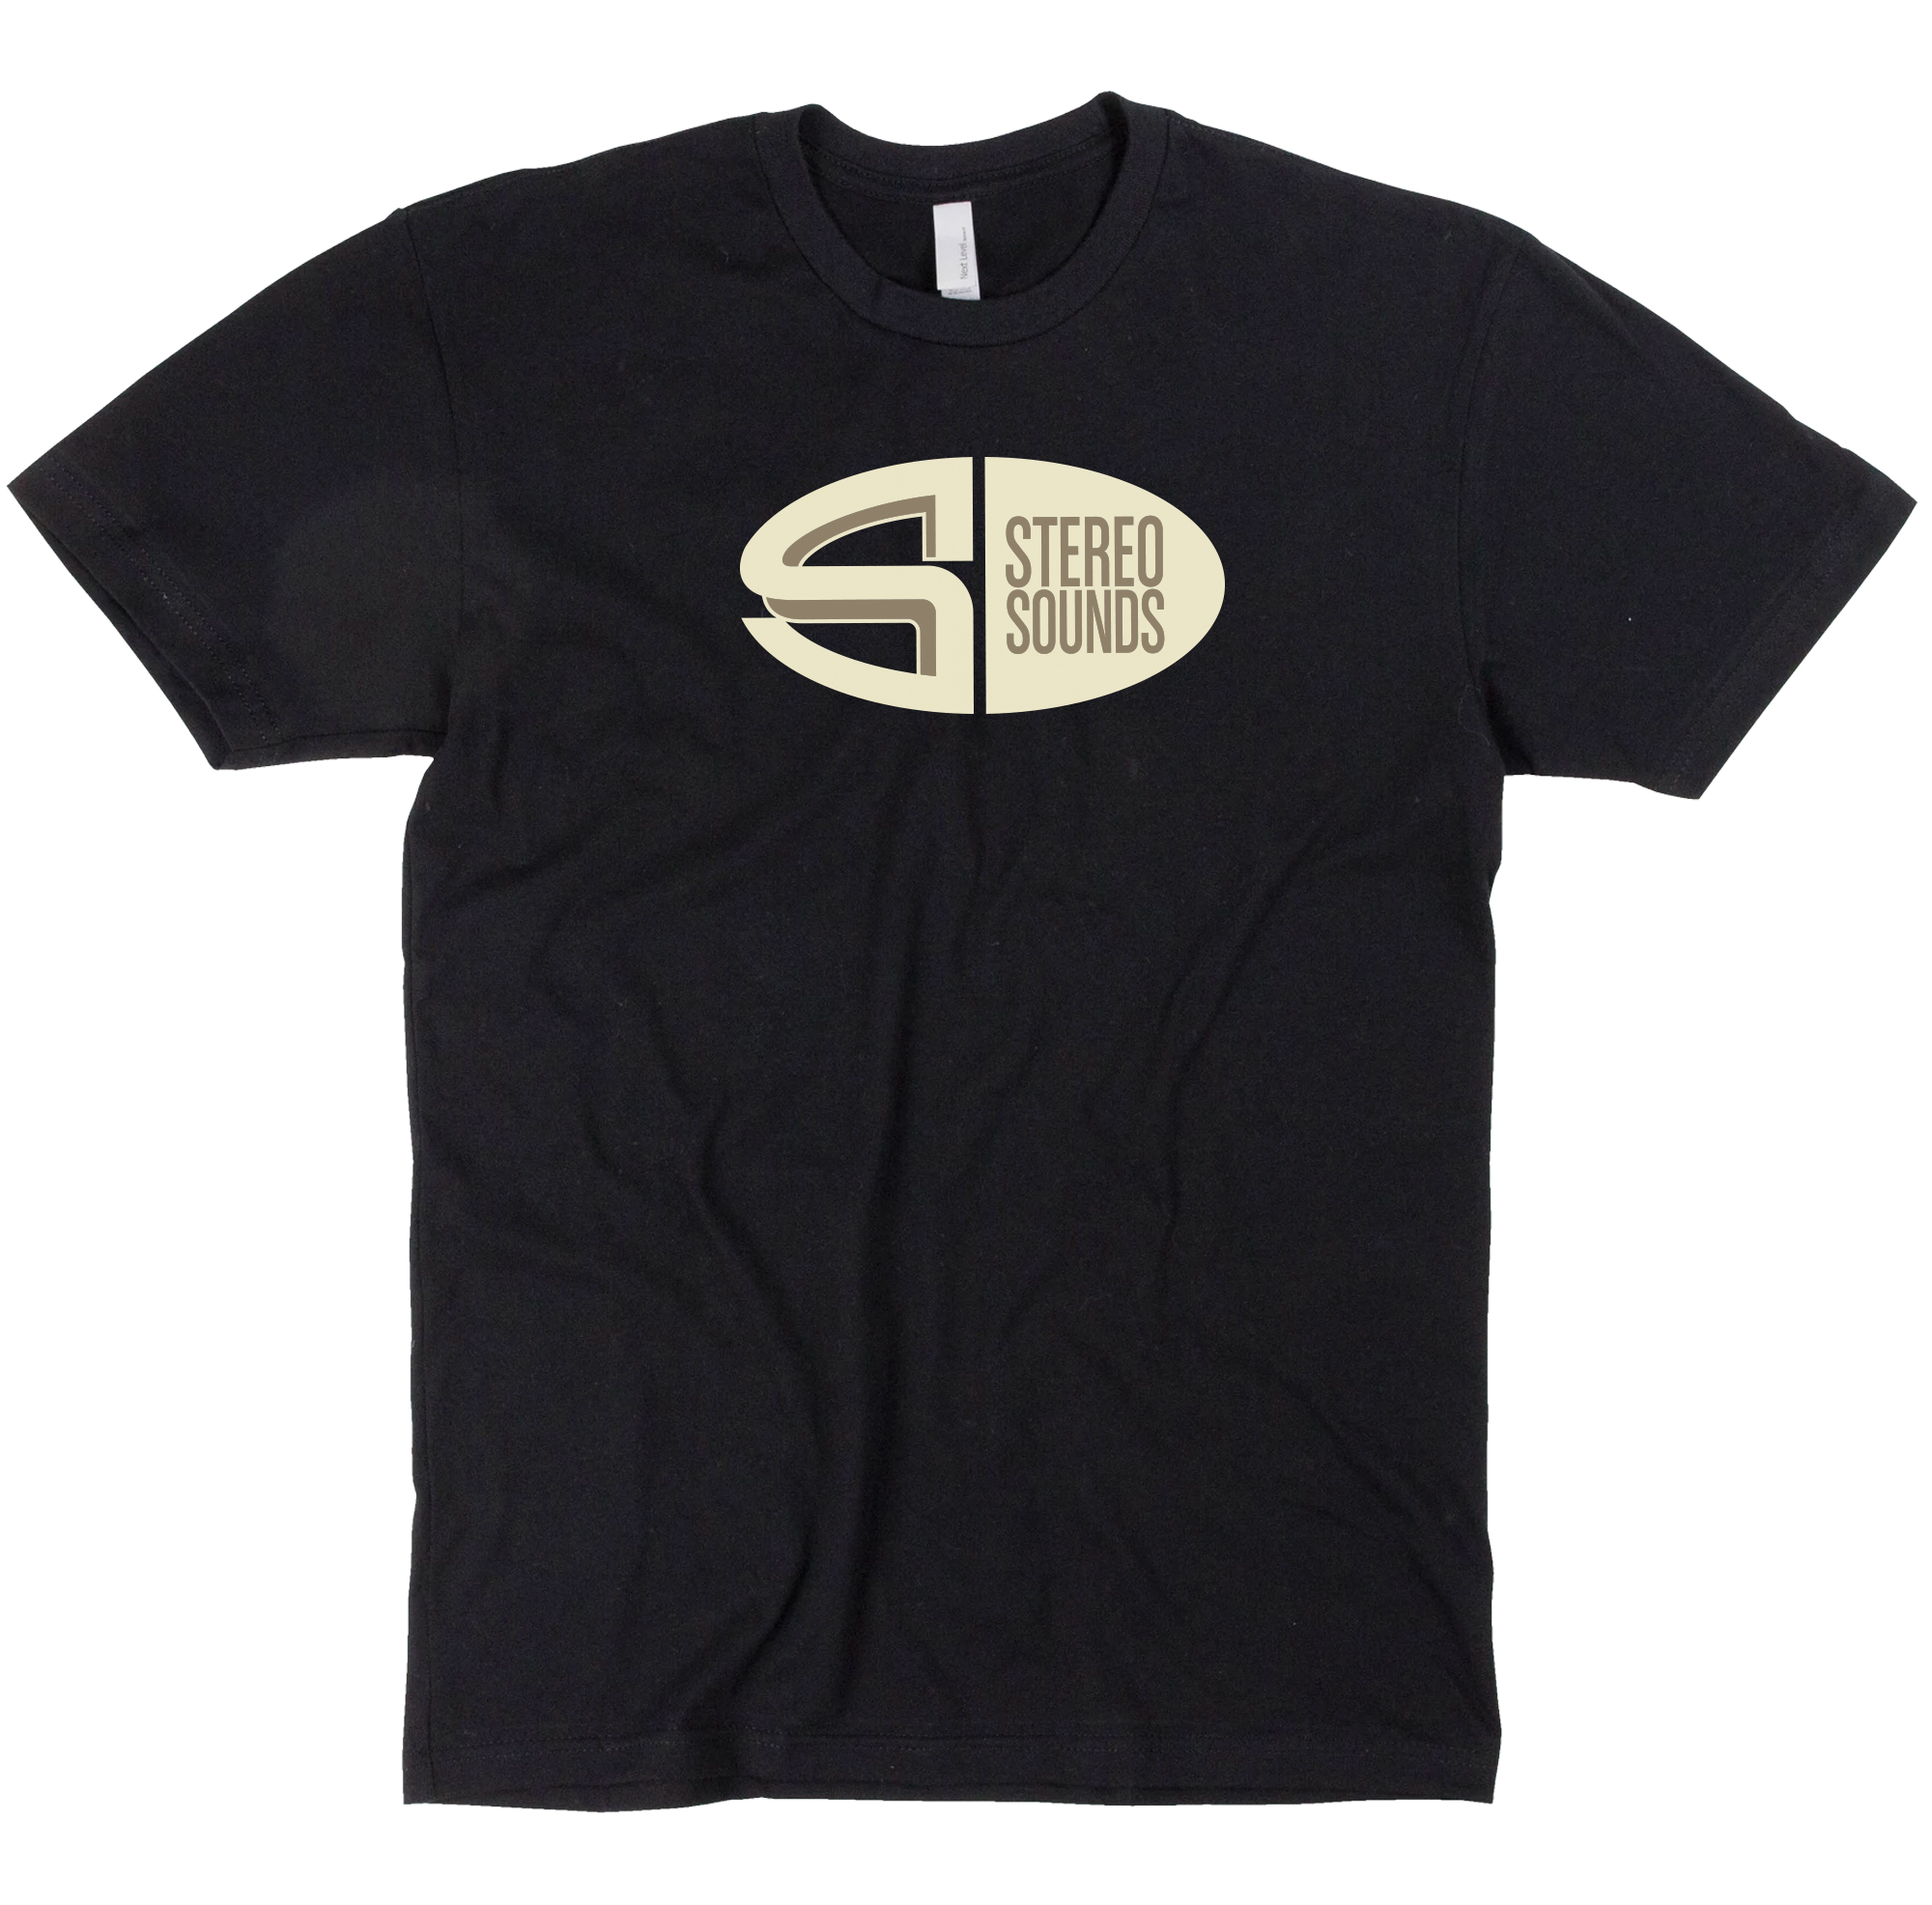 Stereo Sounds Oval Tee - Black